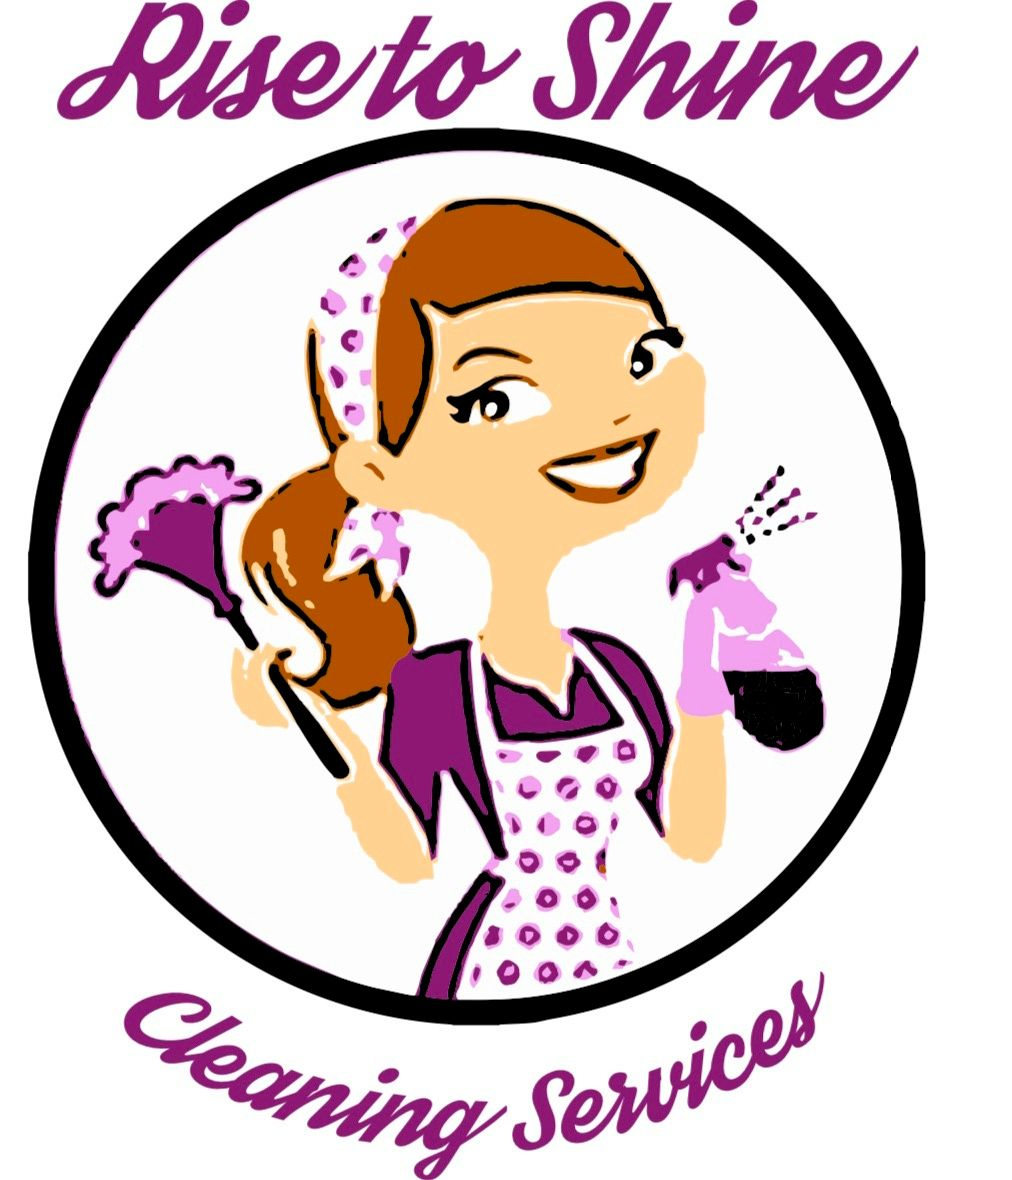 Rise to shine cleaning services LLC